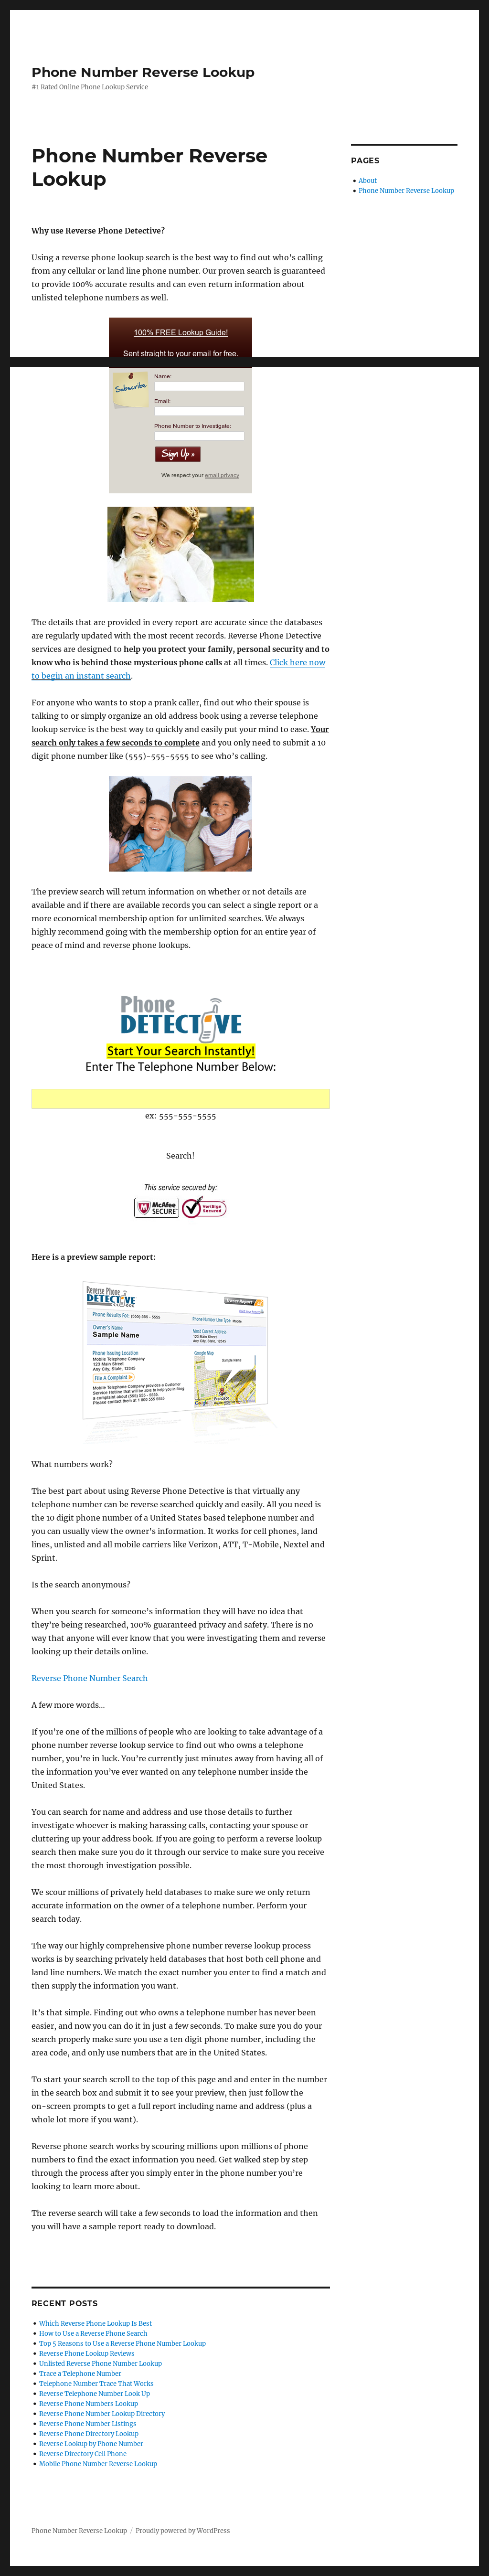 Phone Number Reverse Lookup Competitors, Revenue and